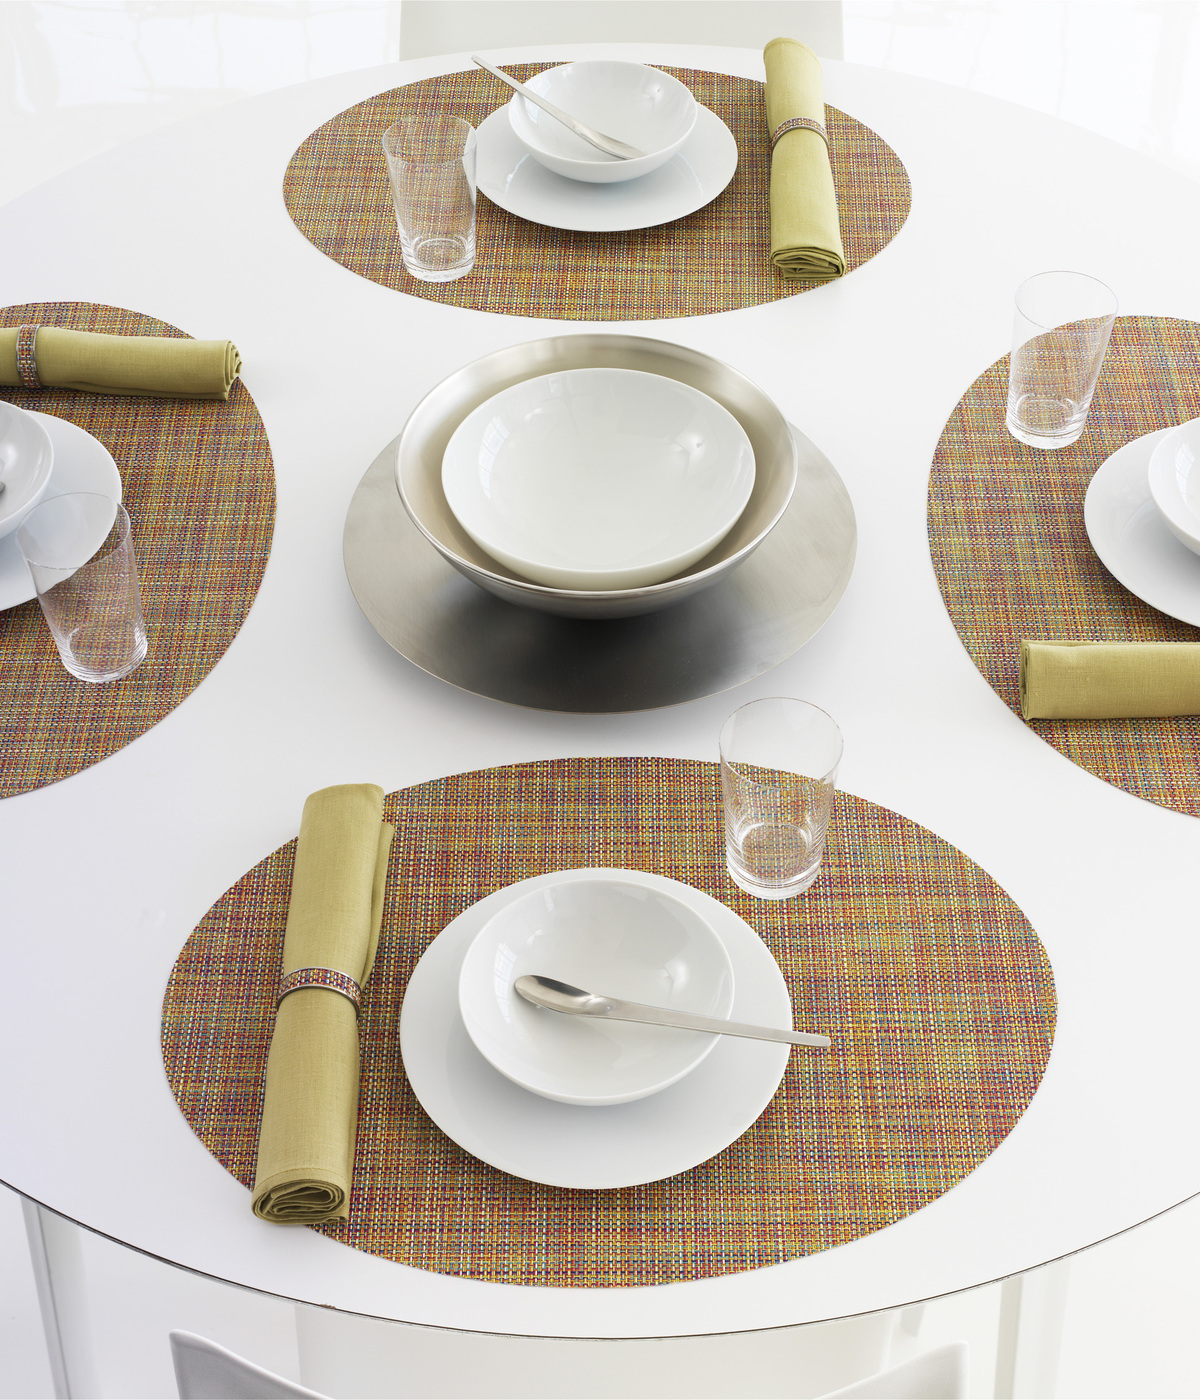 Oval placemat with basketweave technqiue